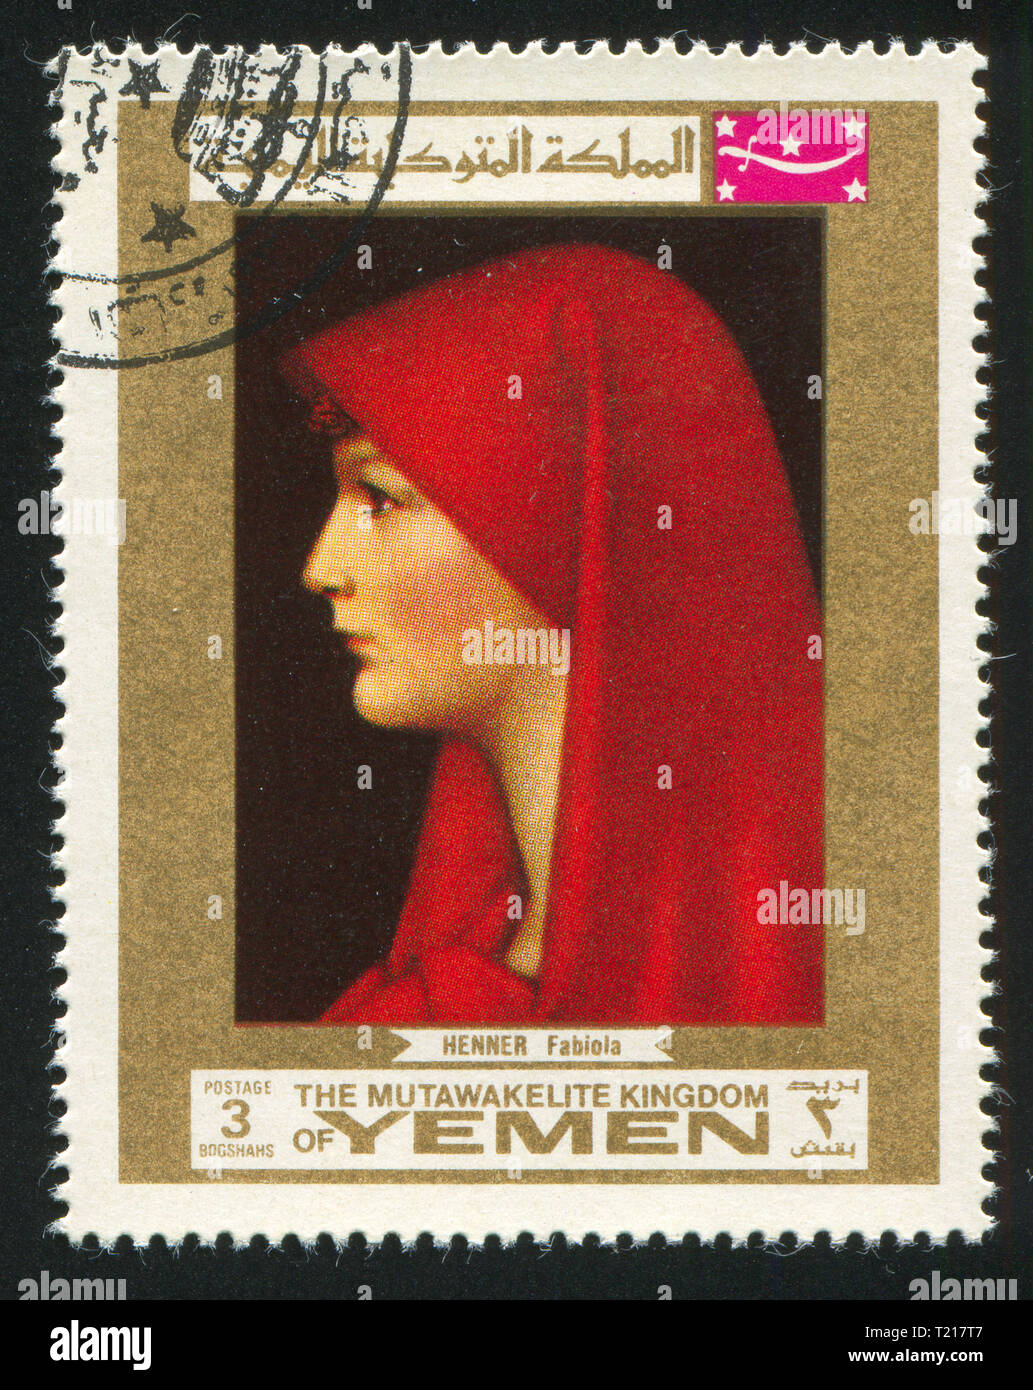 YEMEN - CIRCA 1972: stamp printed by Yemen, shows Portrait of Fabiola by Jean Jacques Henner, circa 1972 - Stock Image